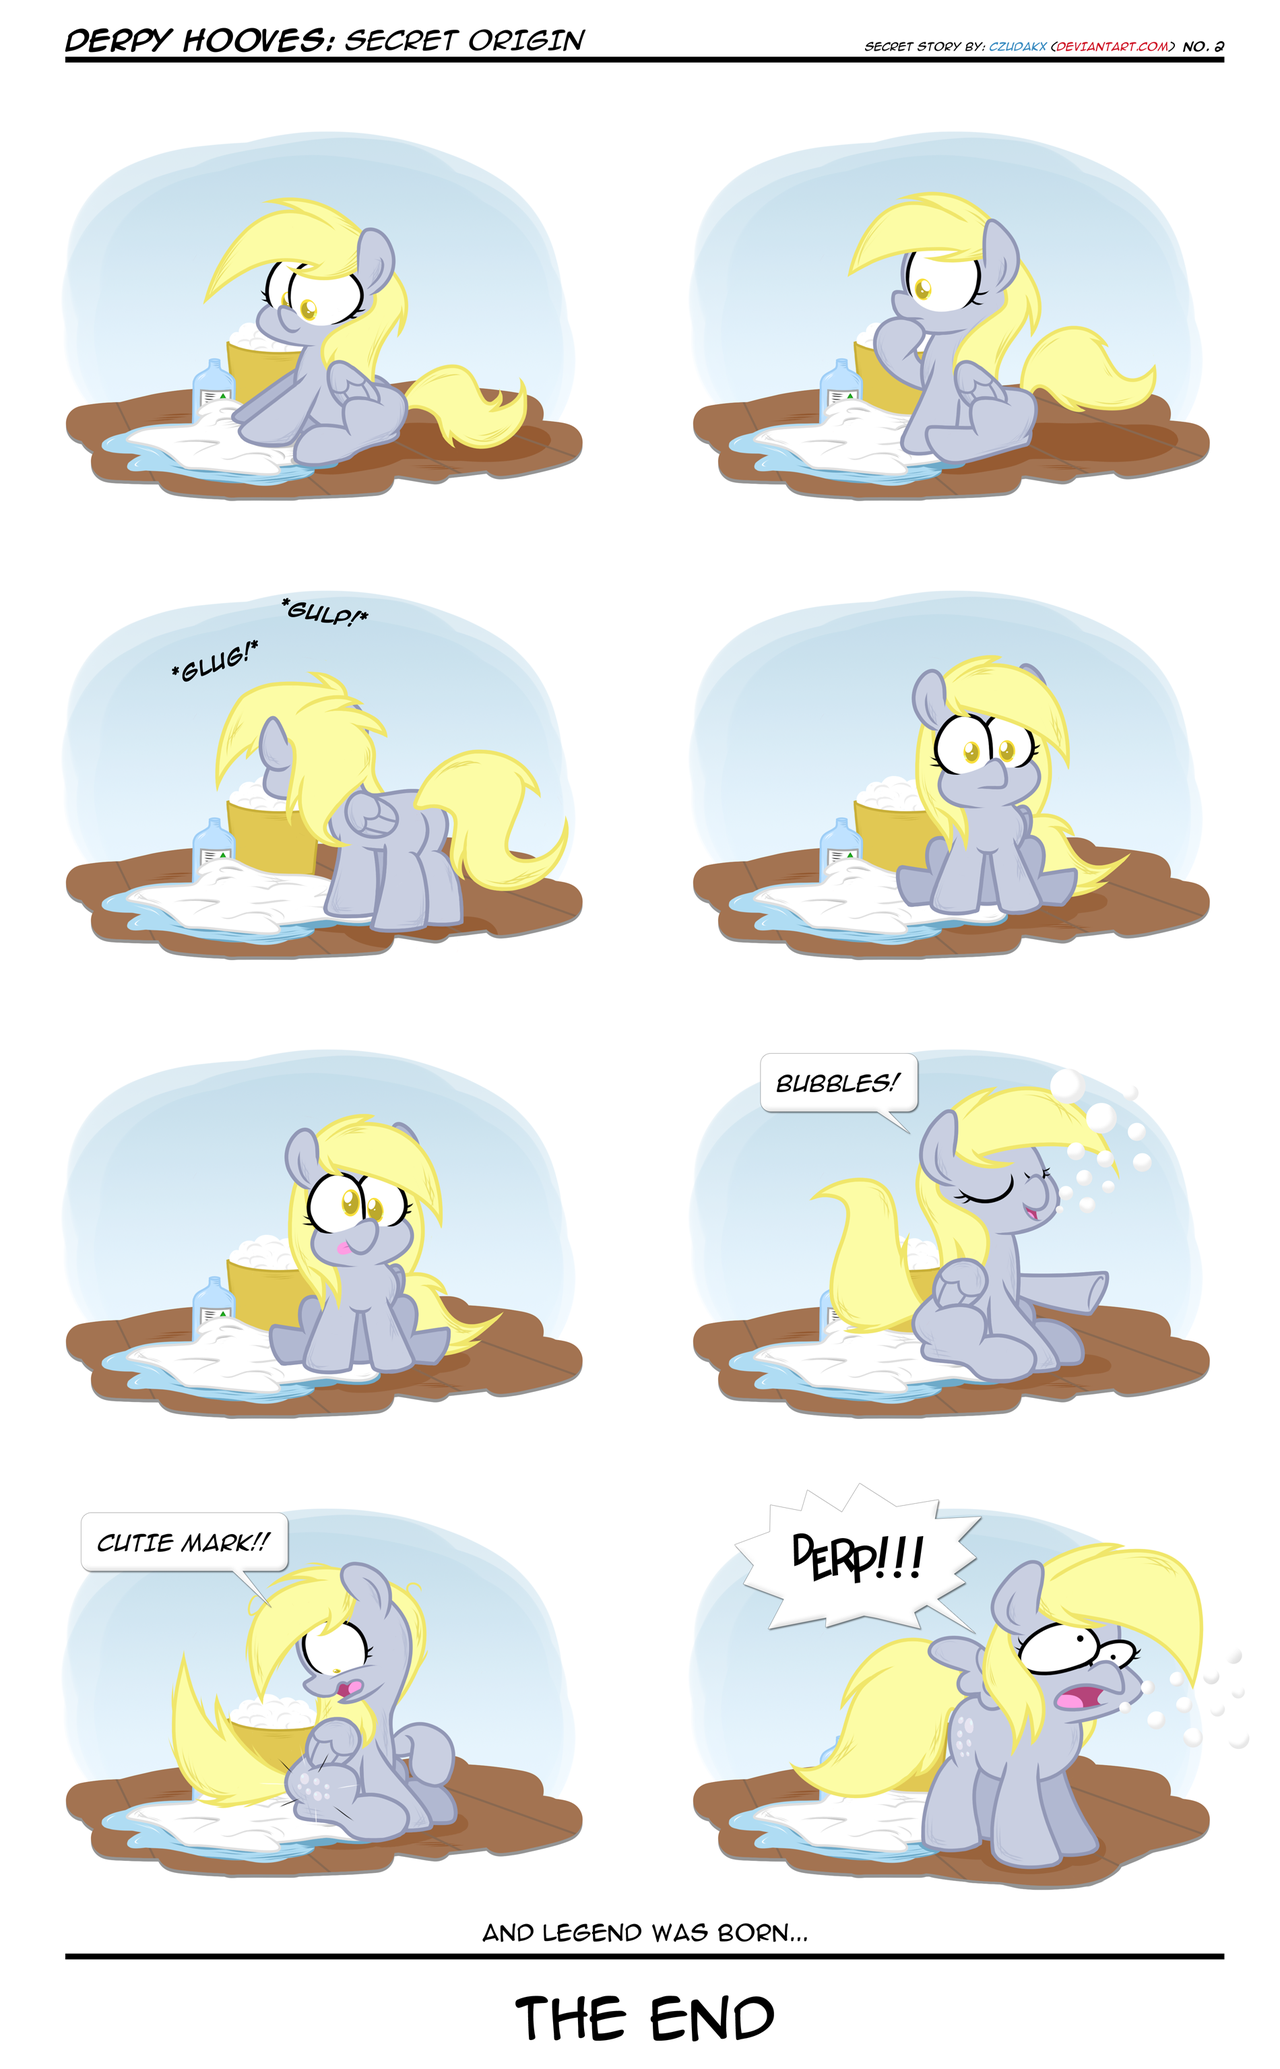 Derpy Hooves - Secret Origin